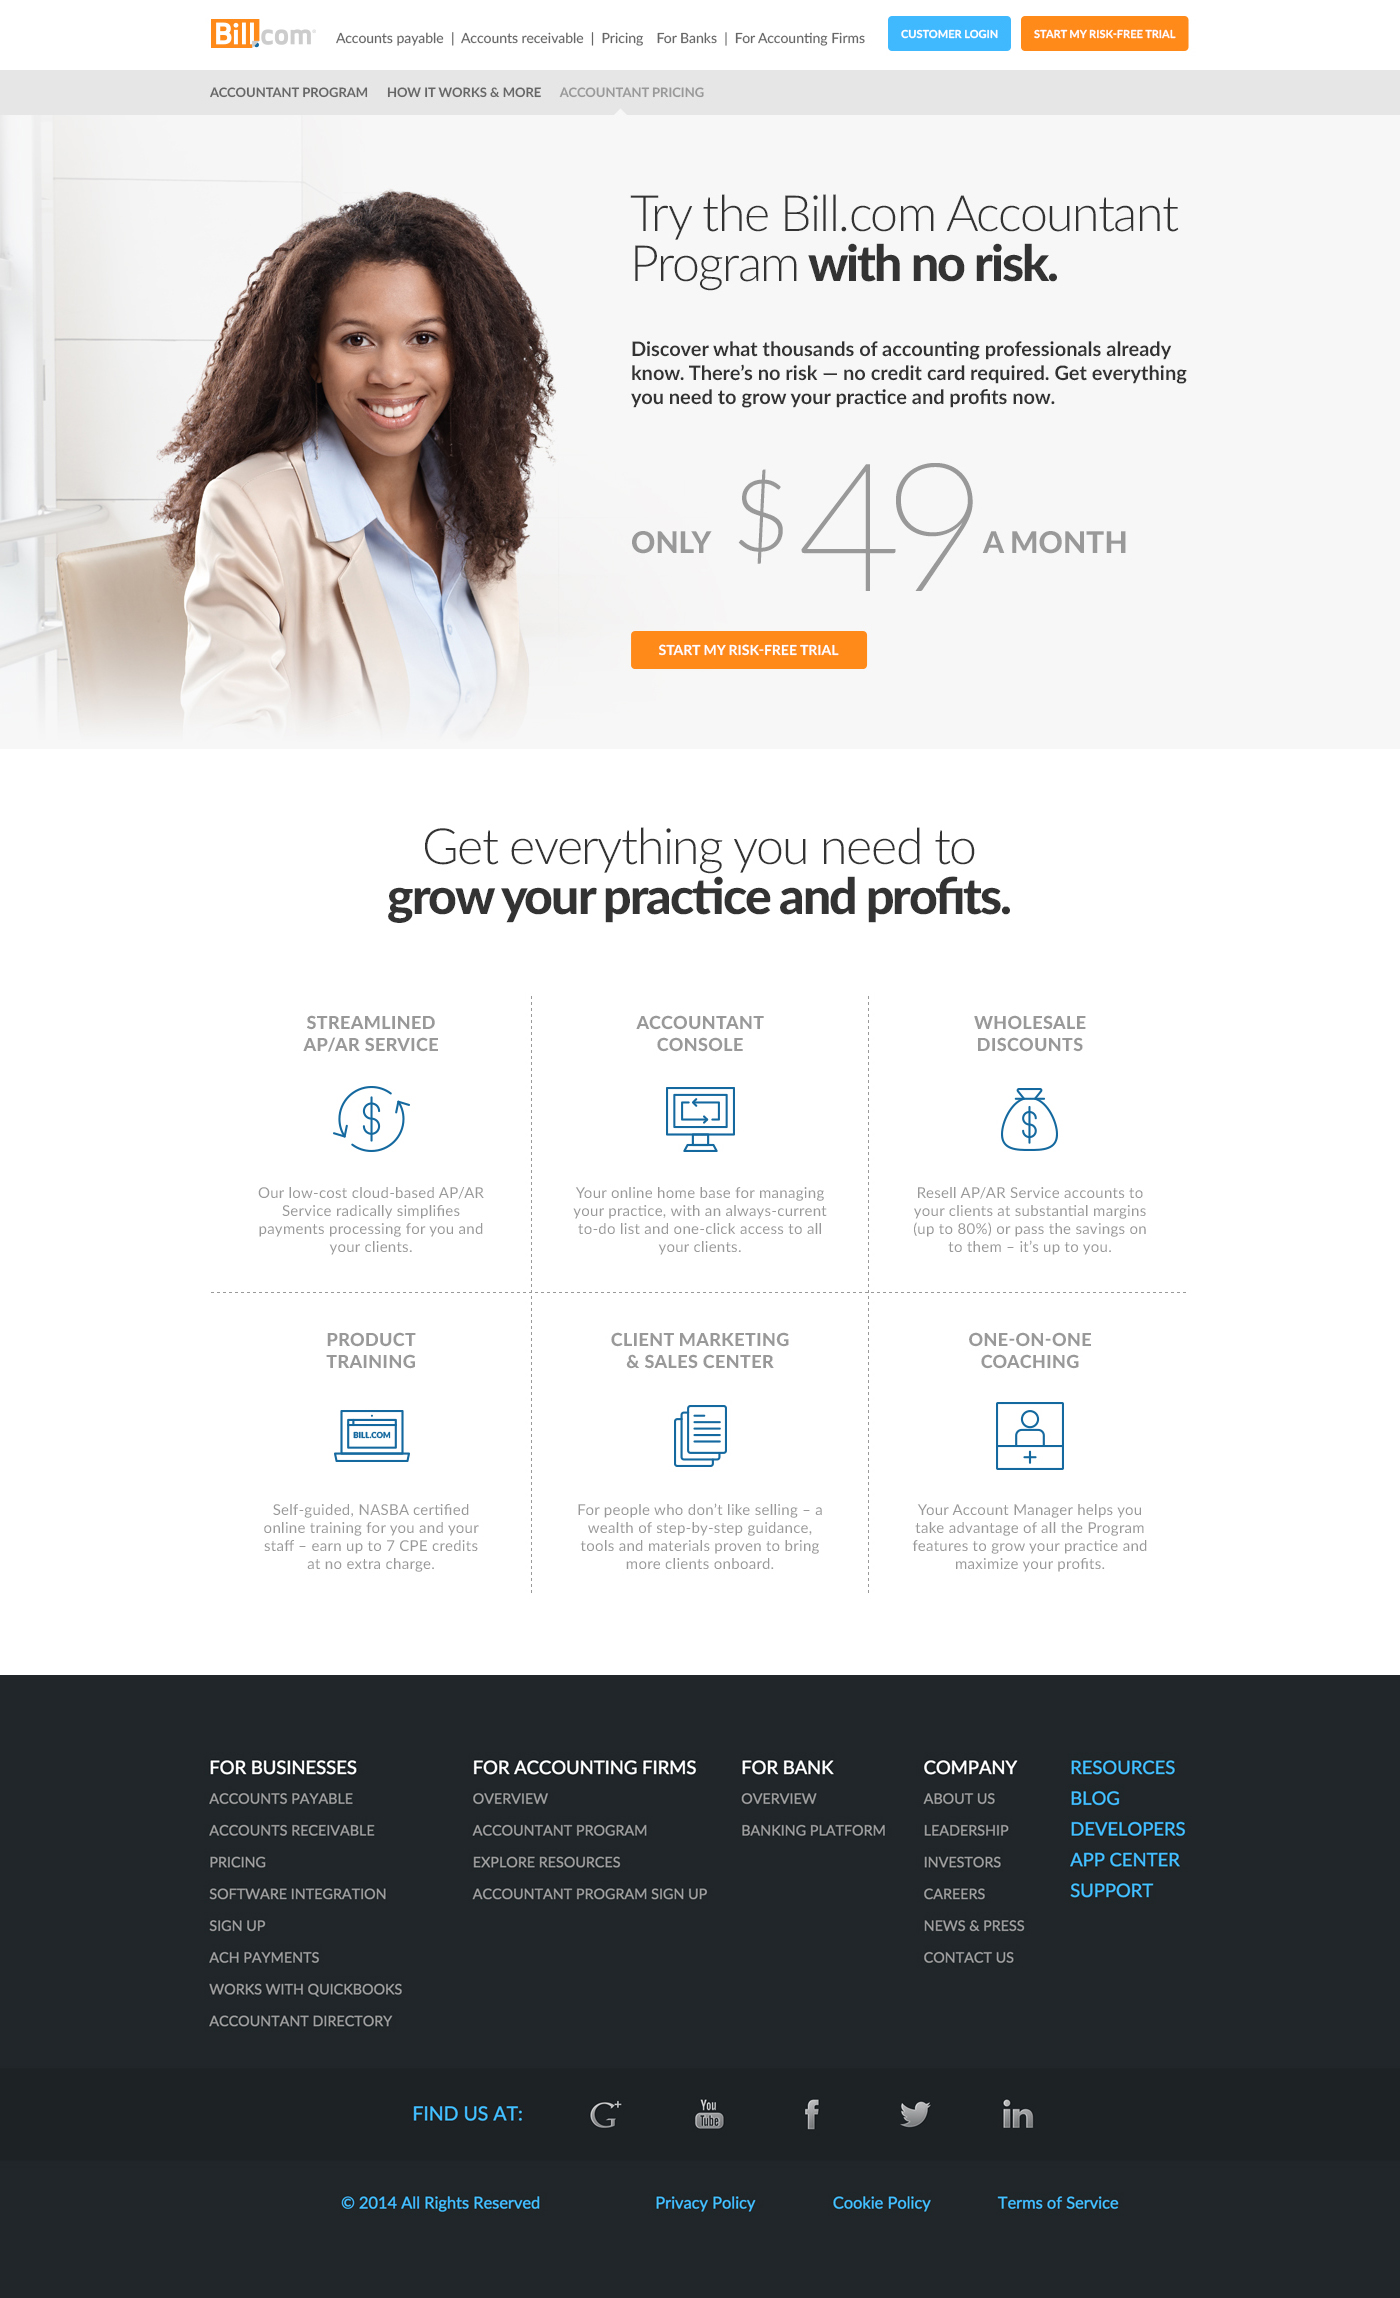 Accountant_pricing_03